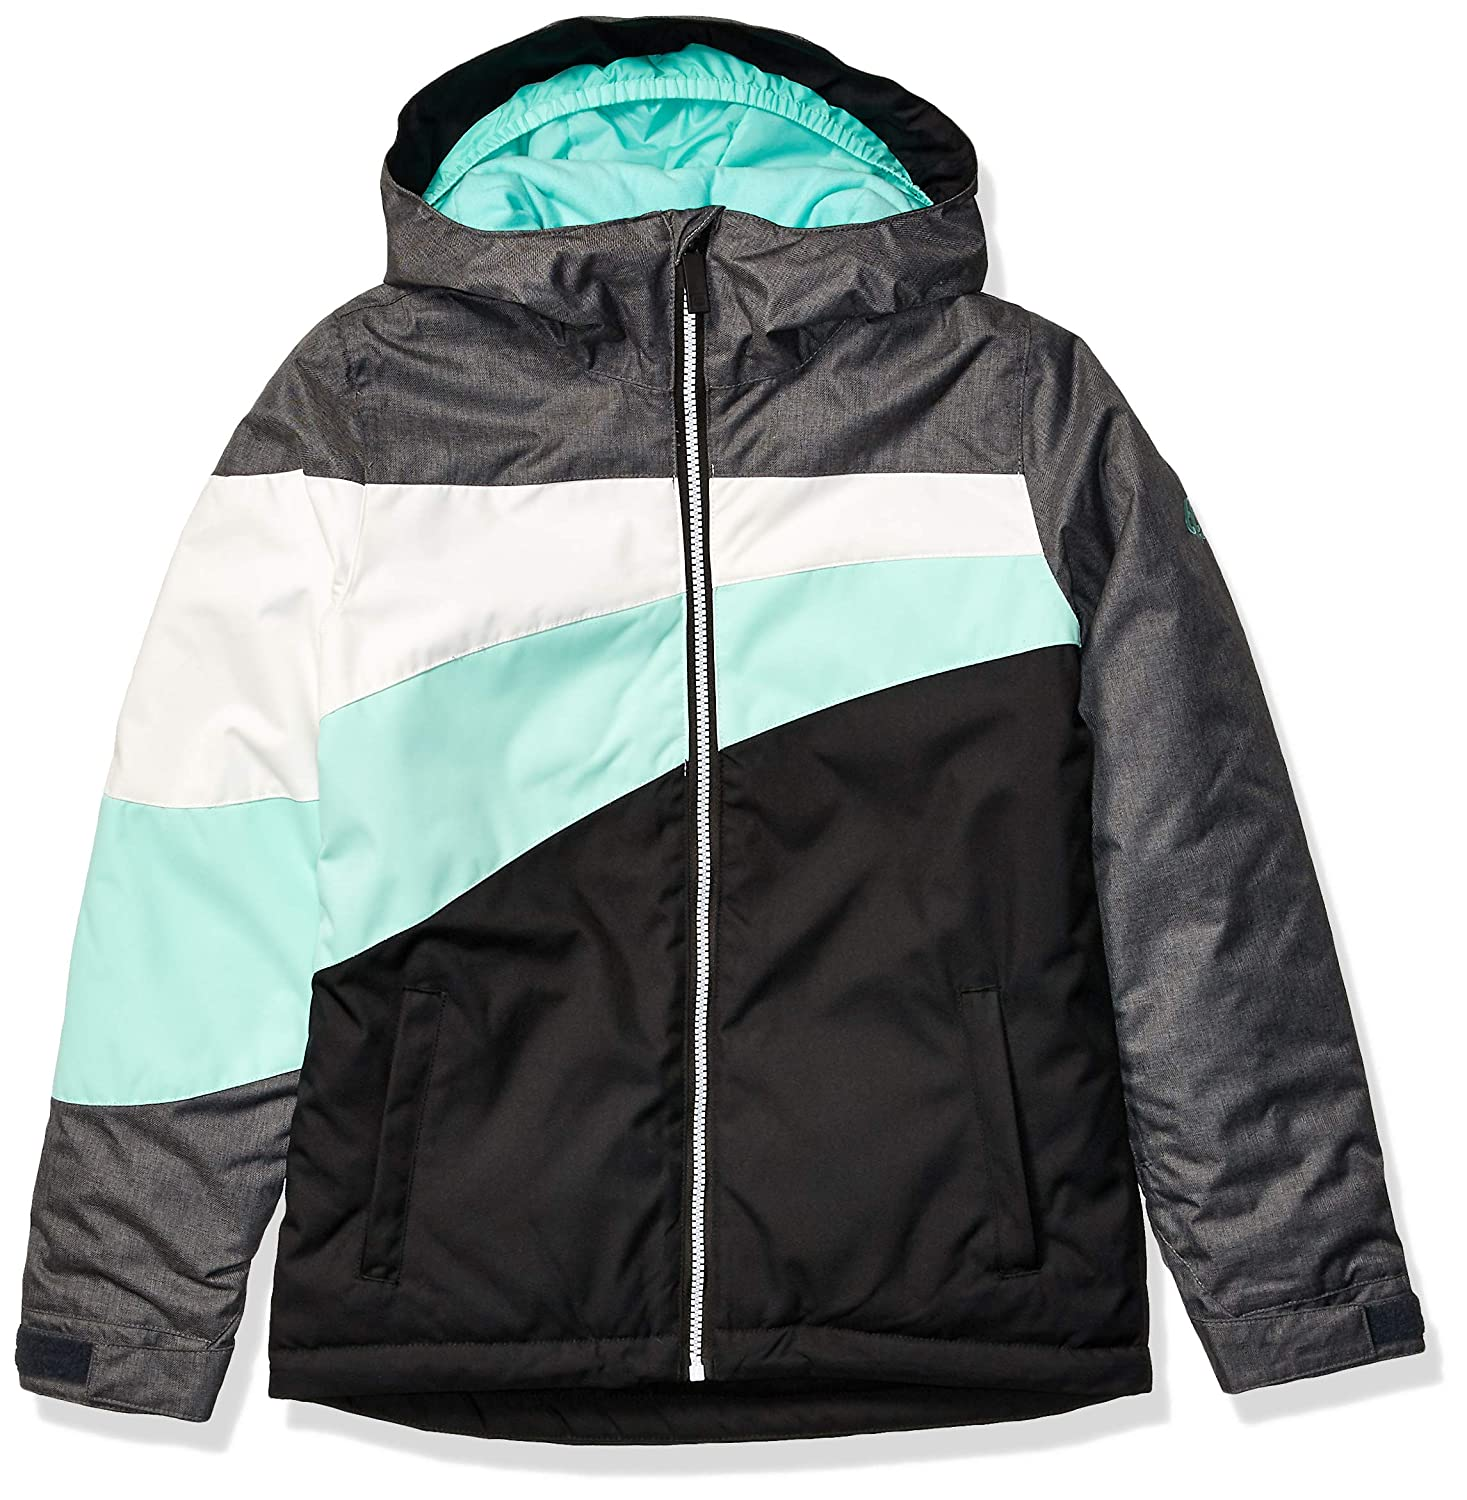 Image of 686 Girls 100% Polyester Water- Proof Woven Jacket Jackets